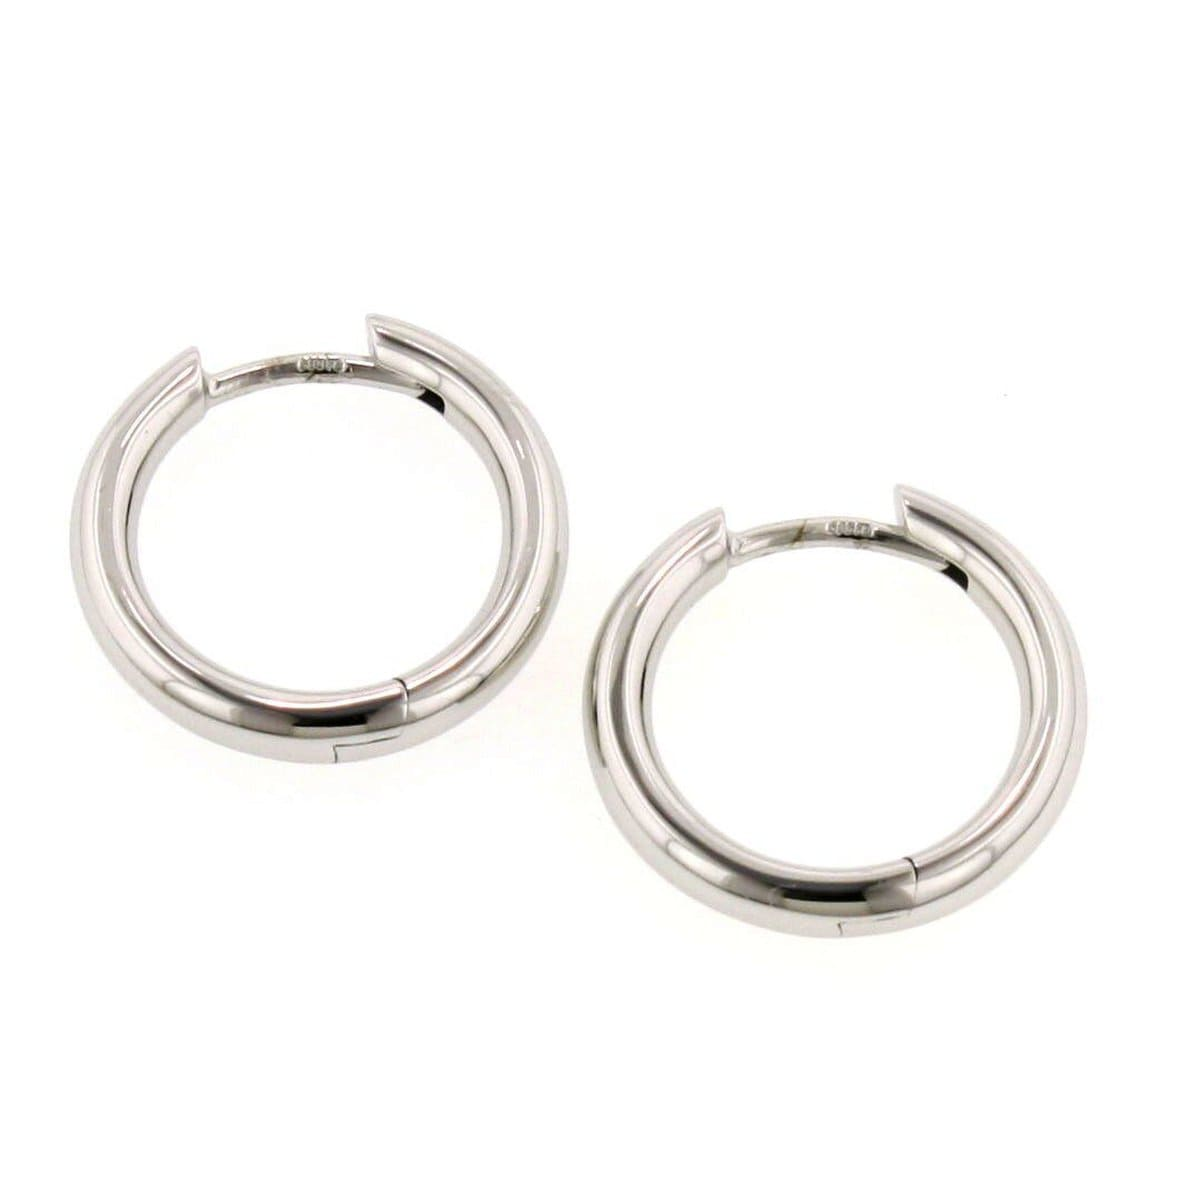 Rhodium Plated Sterling Silver Earrings - 06/07261